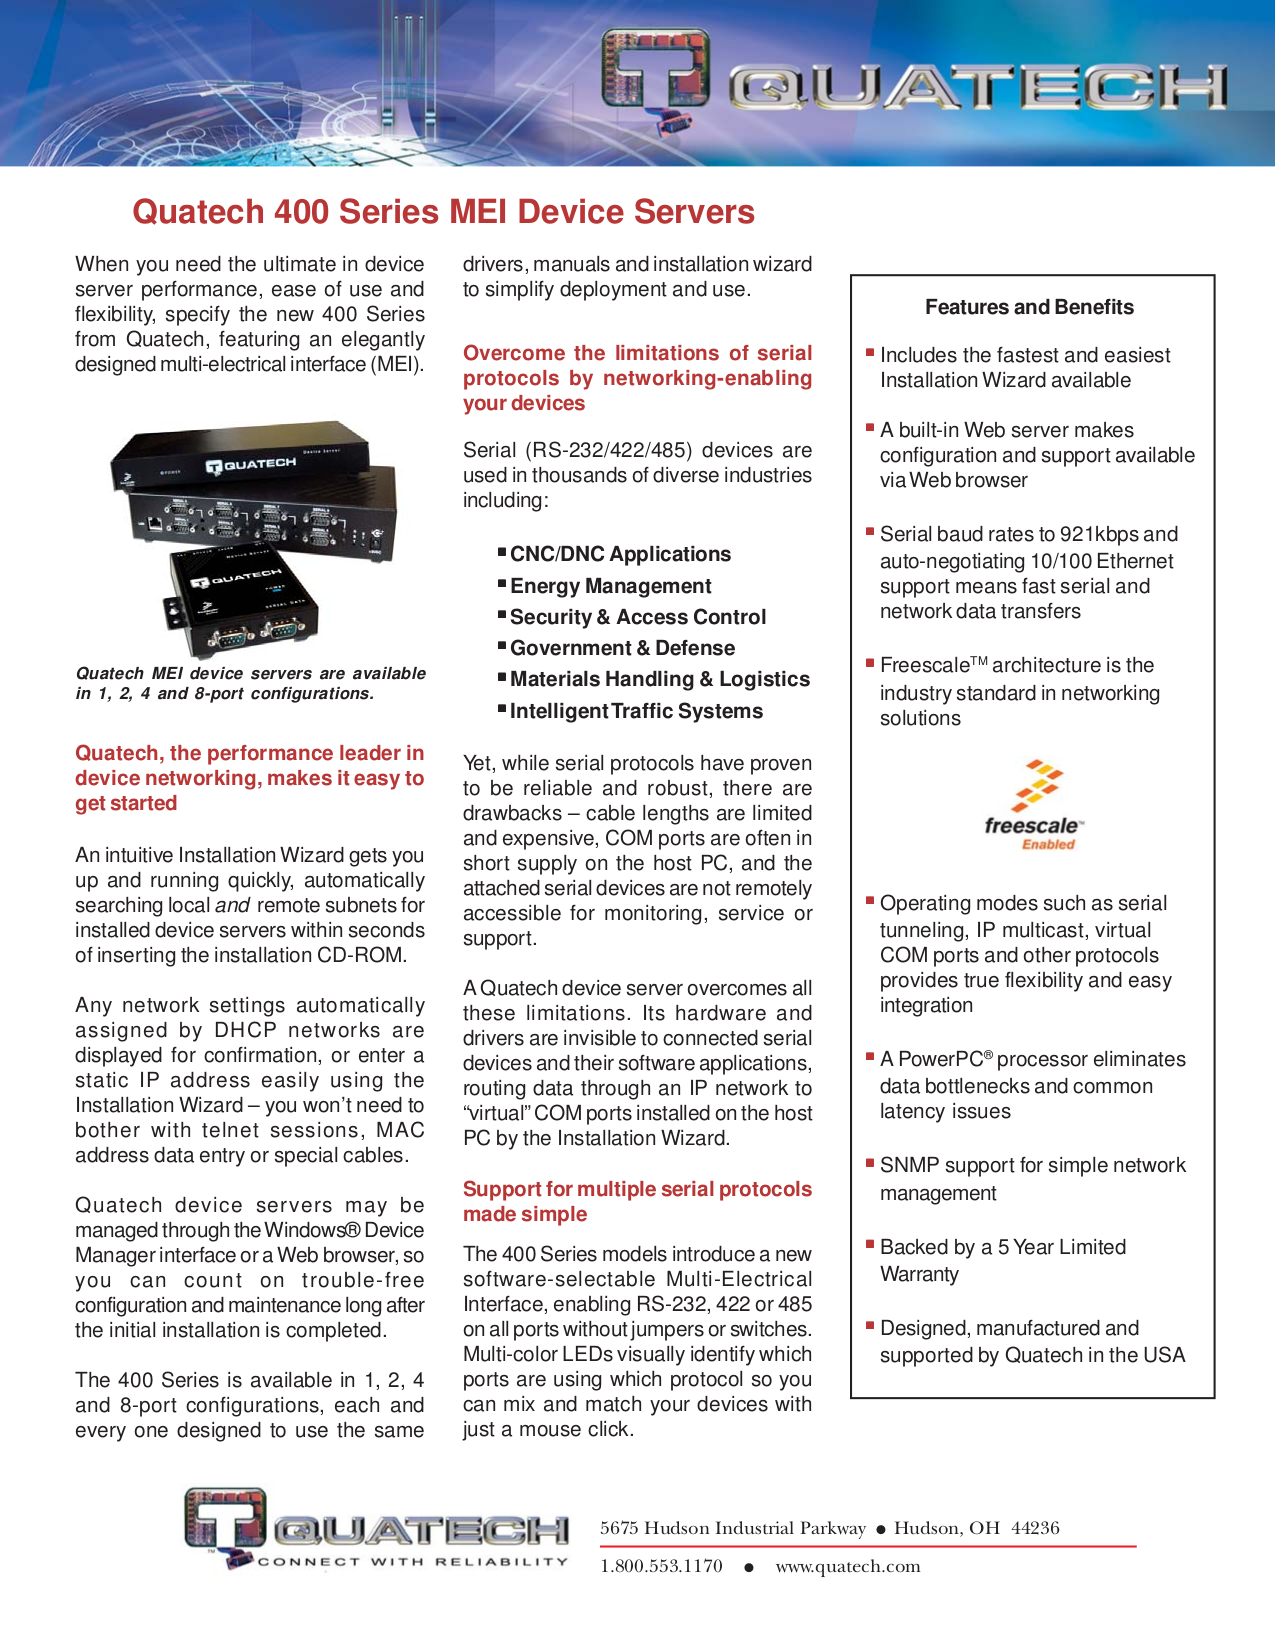 pdf for Quatech Other ESE-400D Servers manual